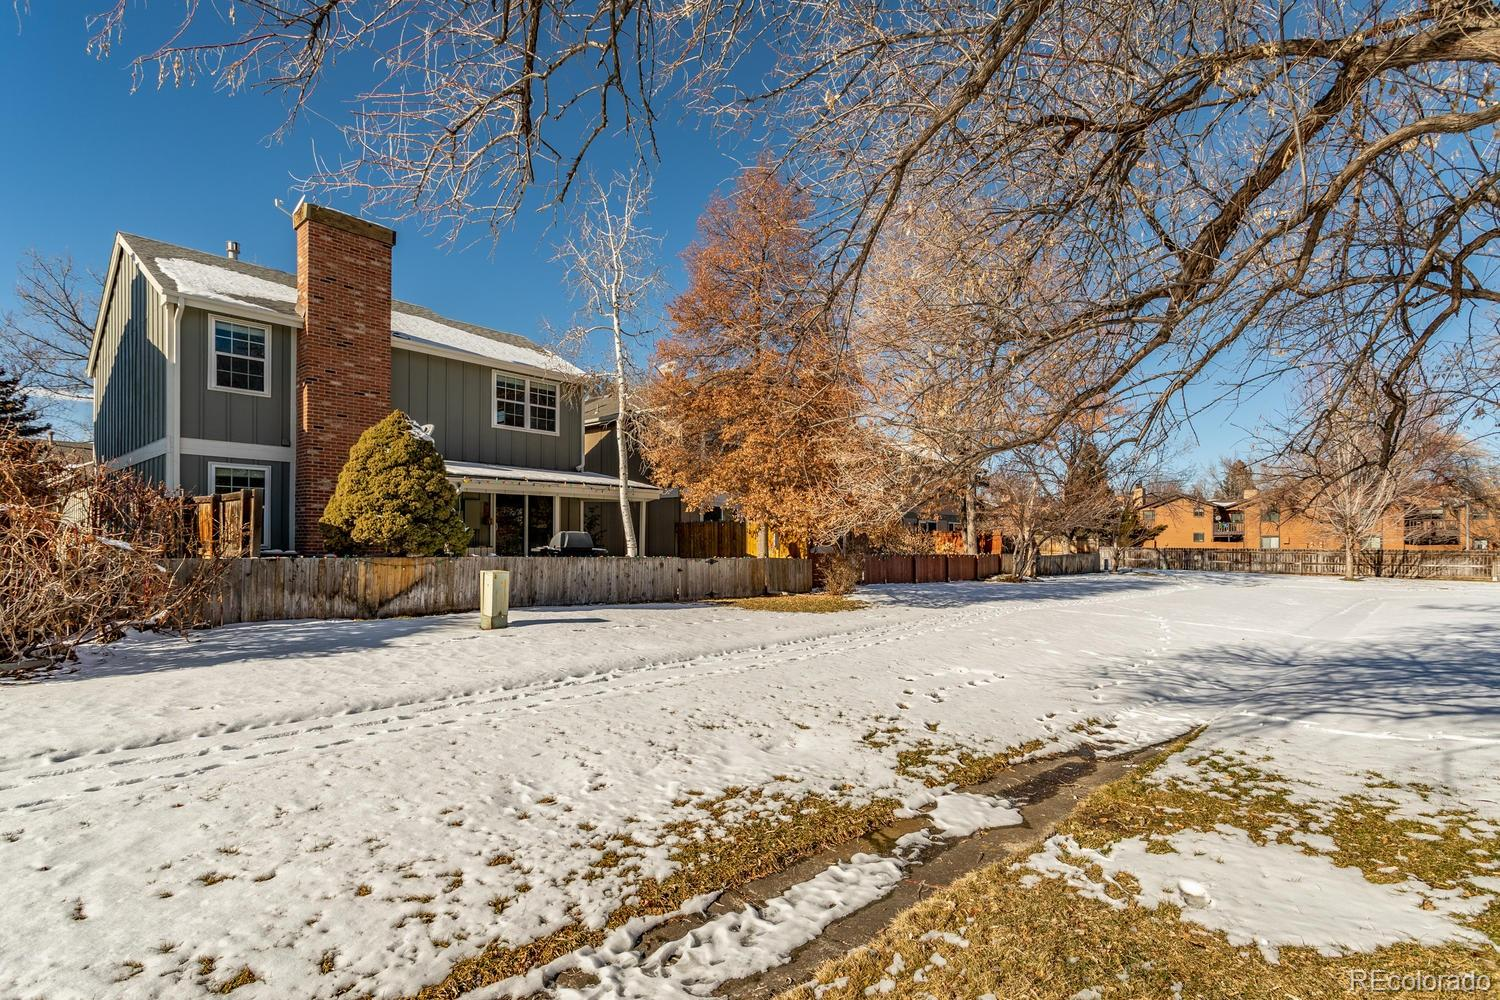 MLS# 6117171 - 26 - 9285 W 87th Place, Arvada, CO 80005